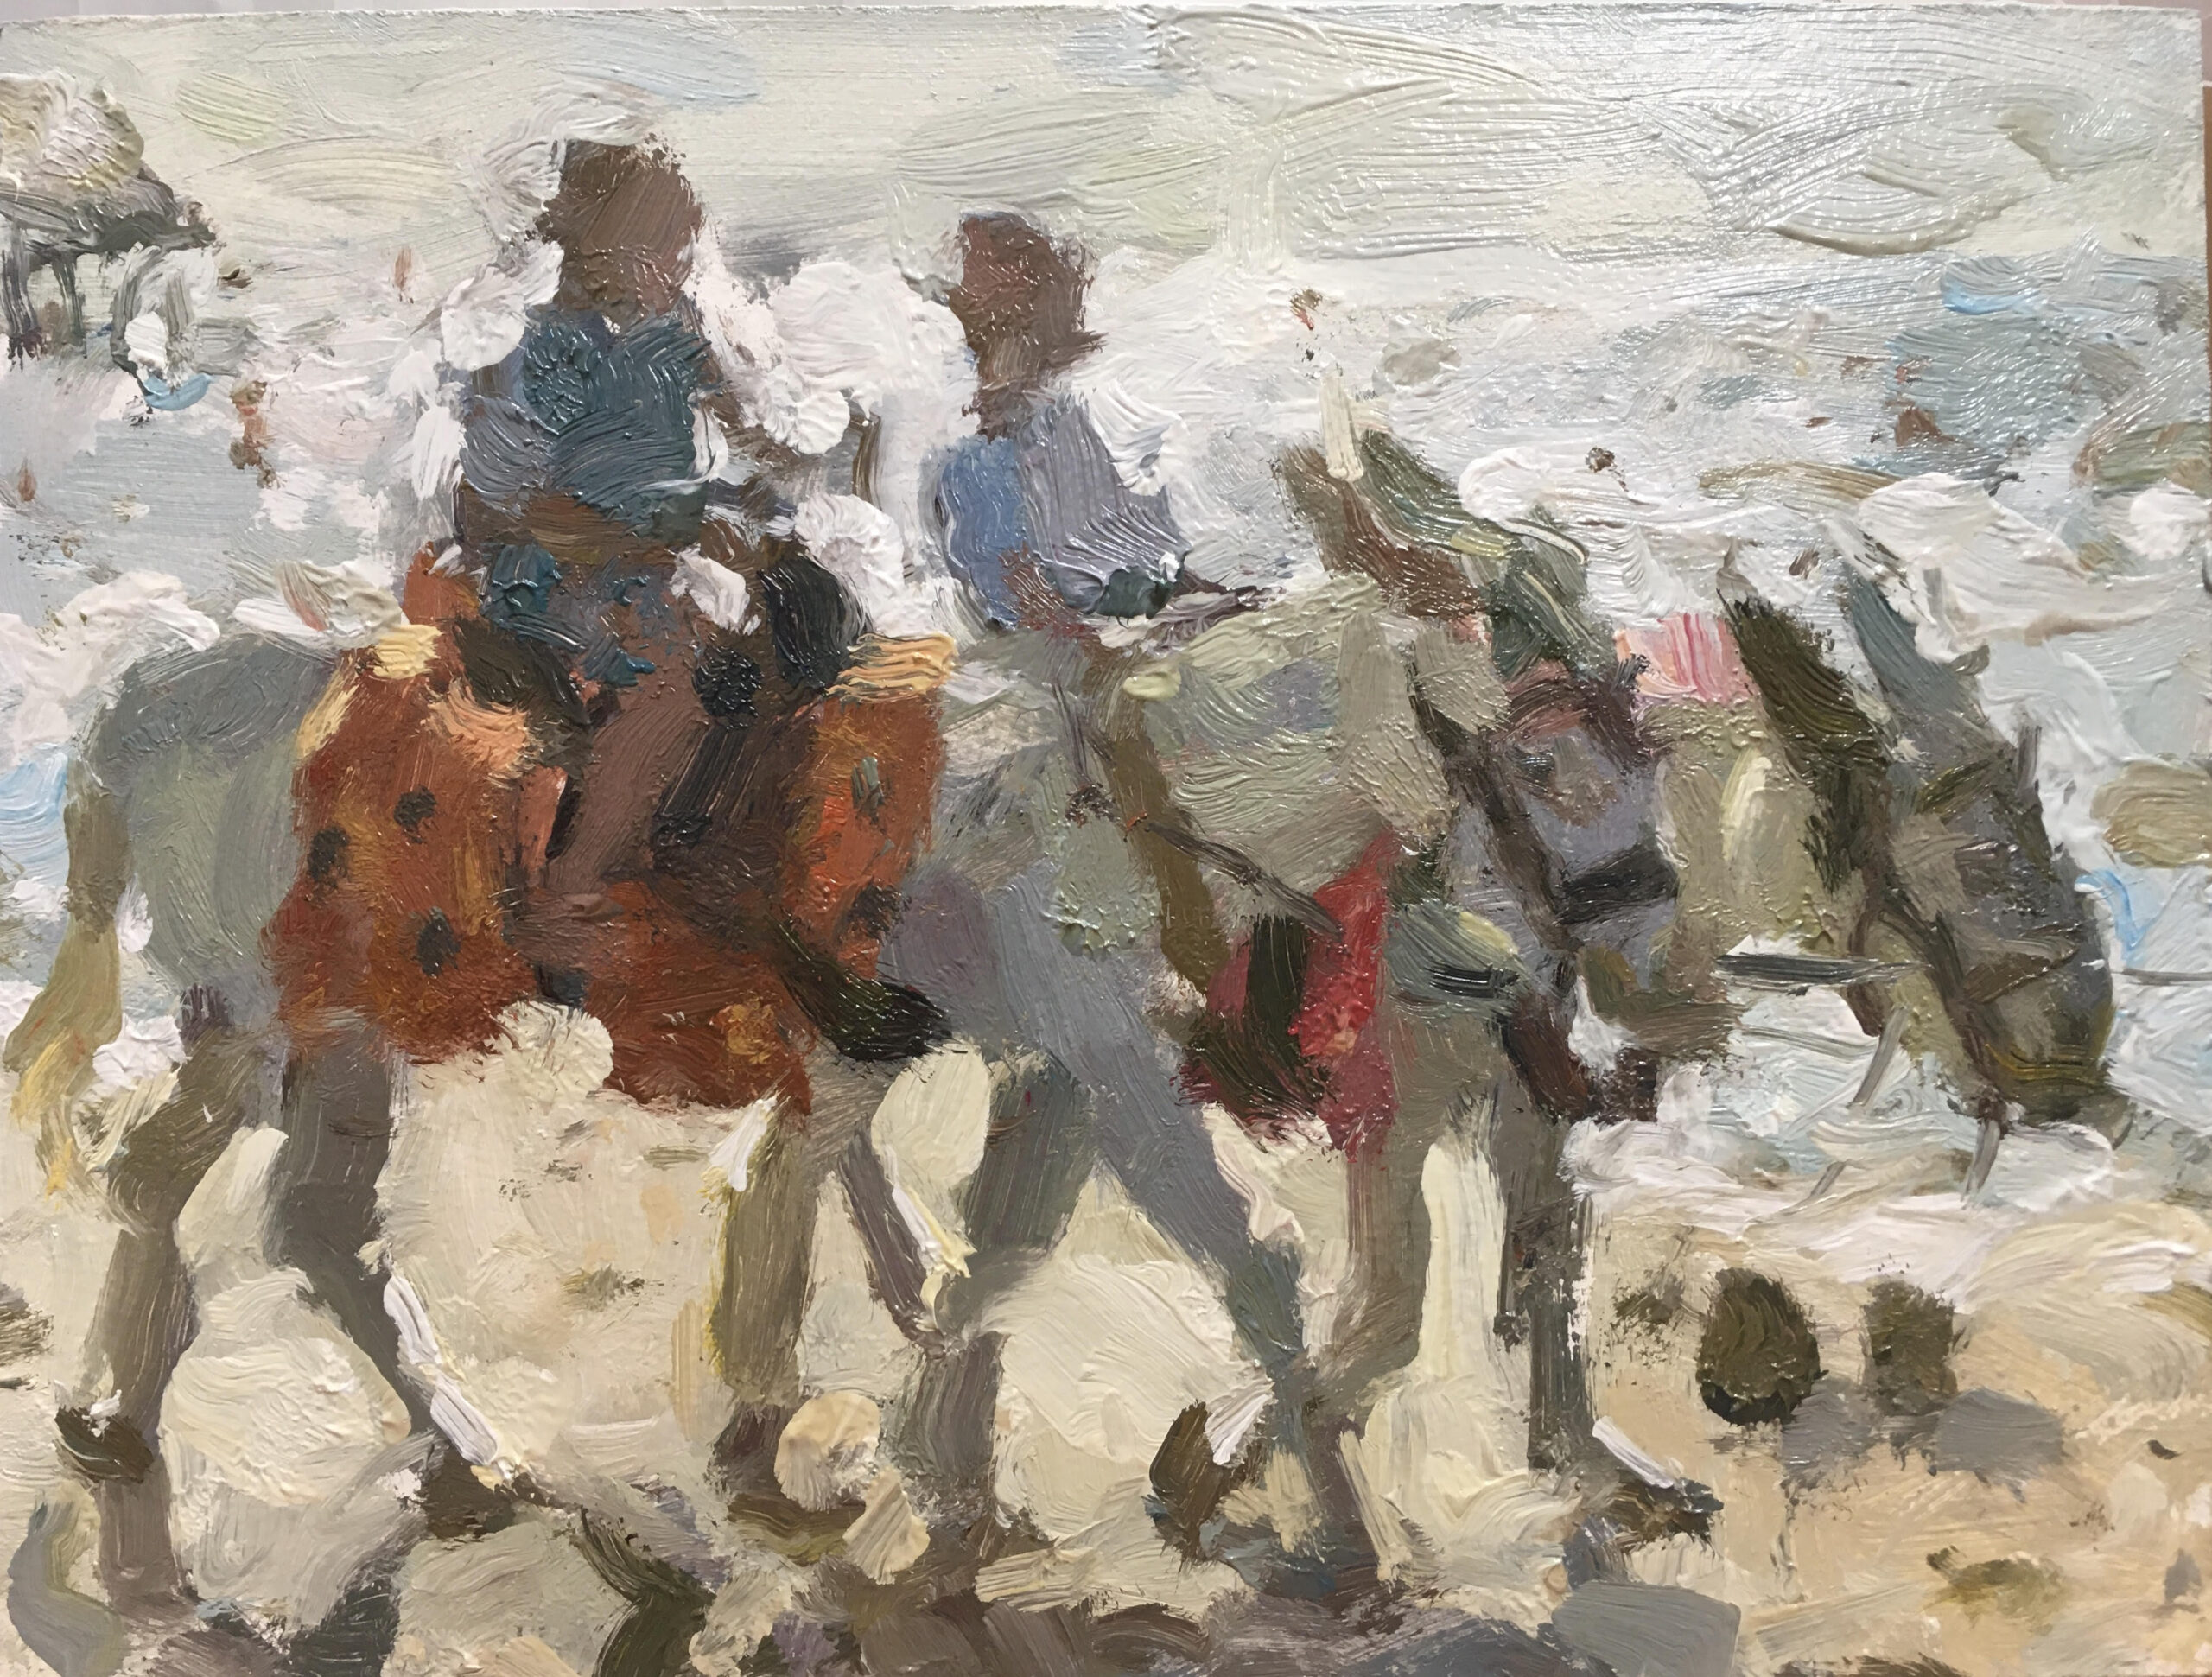 Blackpool Donkeys, 2020 Adam Ralston Oil on canvas, 15.2 x 20.3 cm